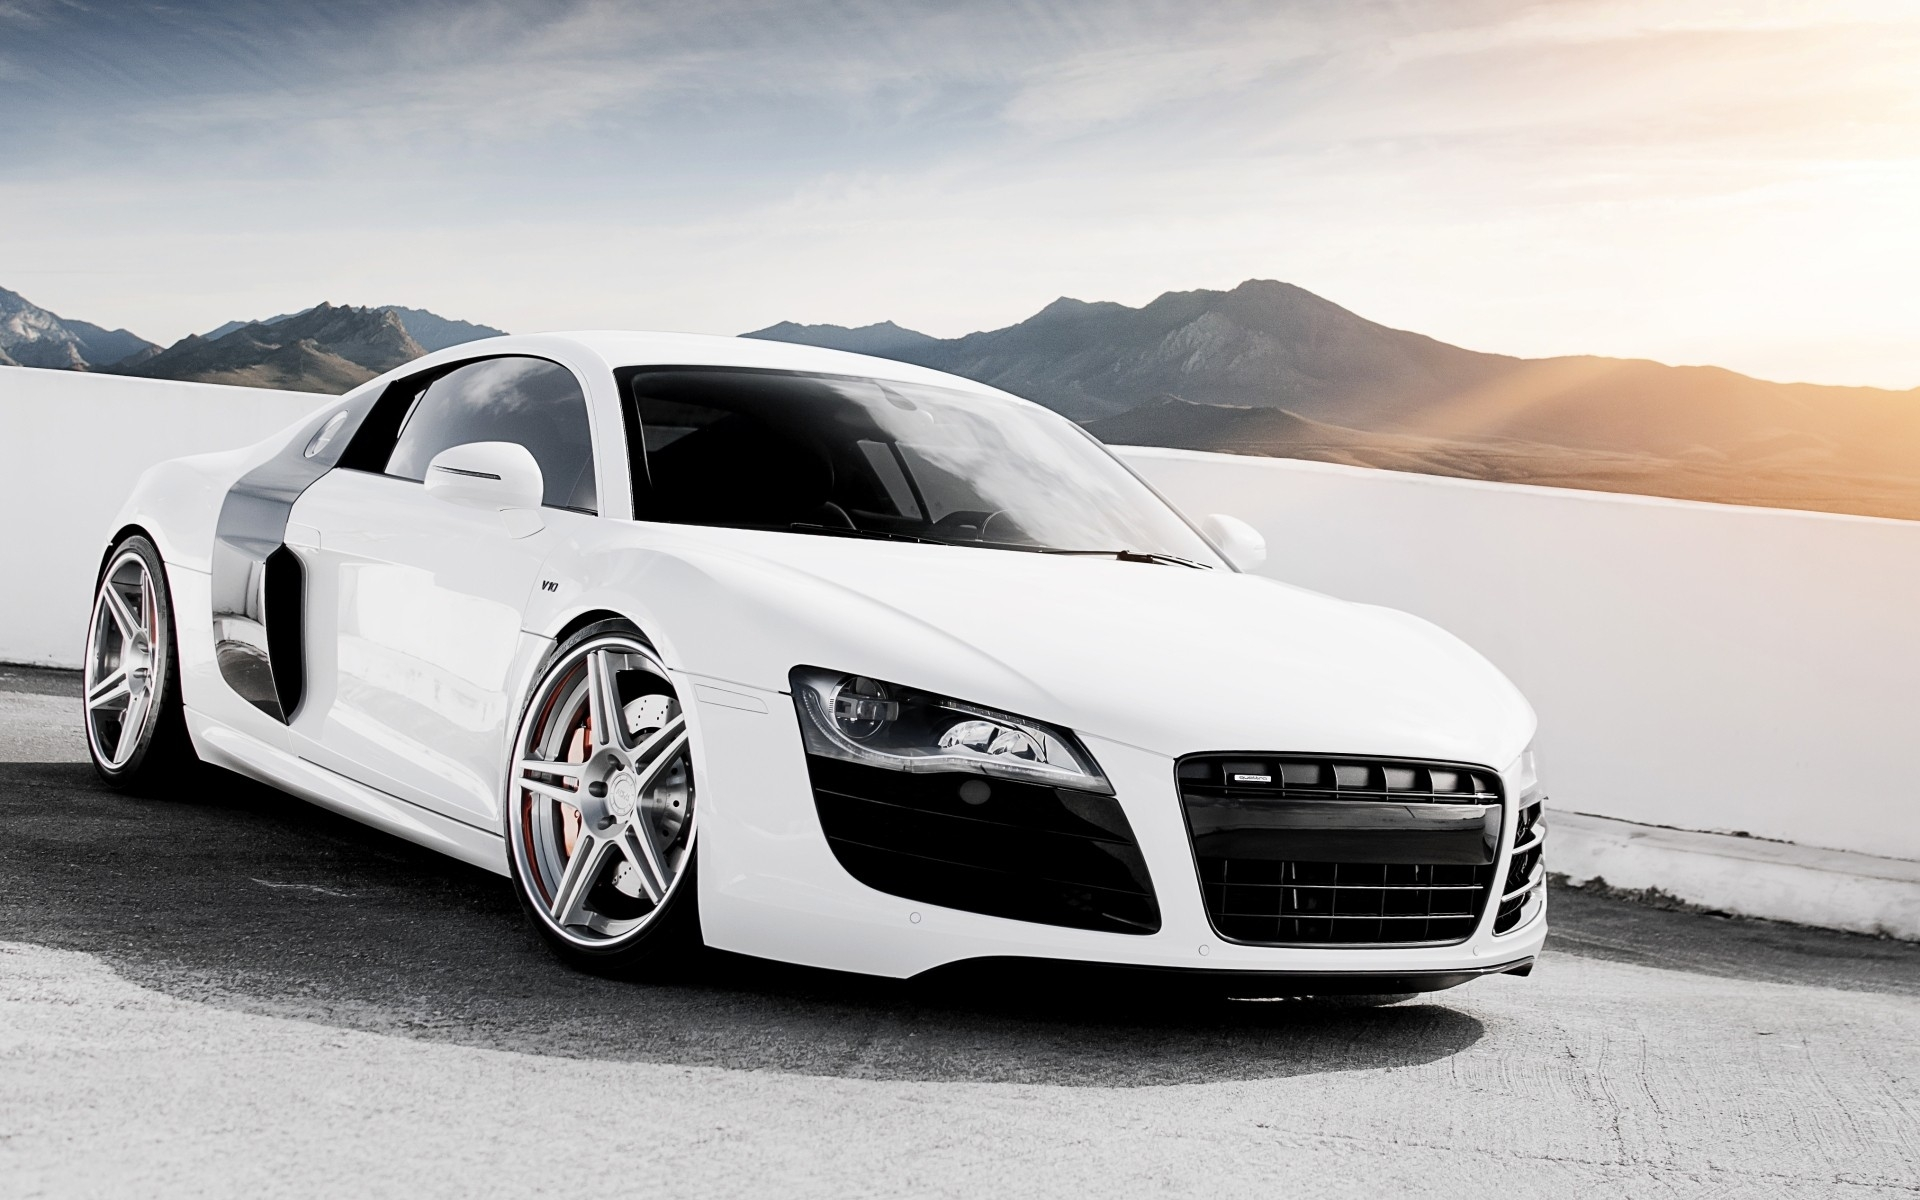 Super Audi R8 v10 Wallpaper HD Car Wallpapers 1920x1200